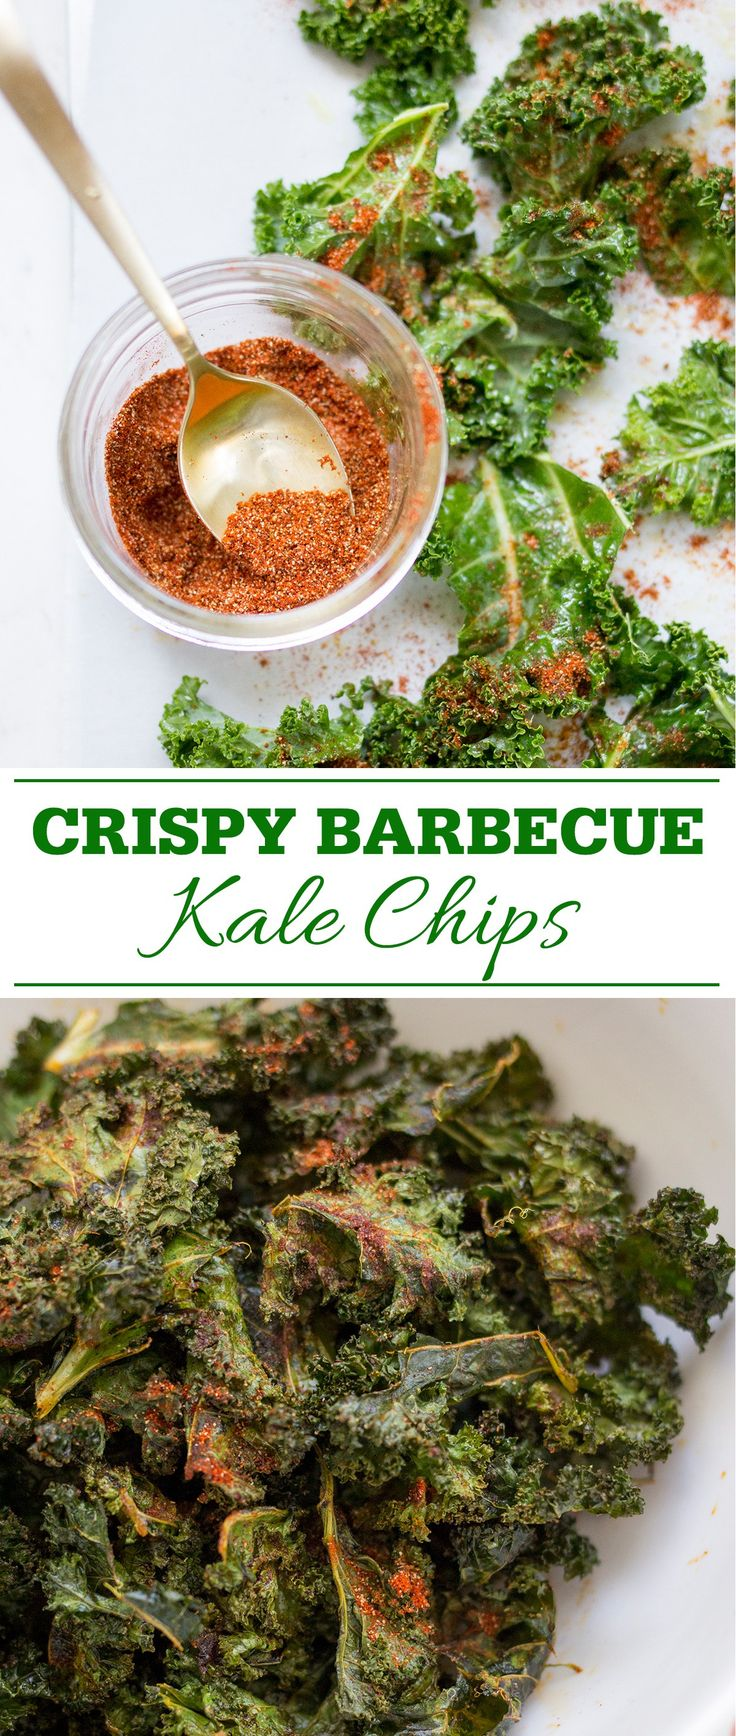 How to make extra Crispy Barbecue Kale Chips